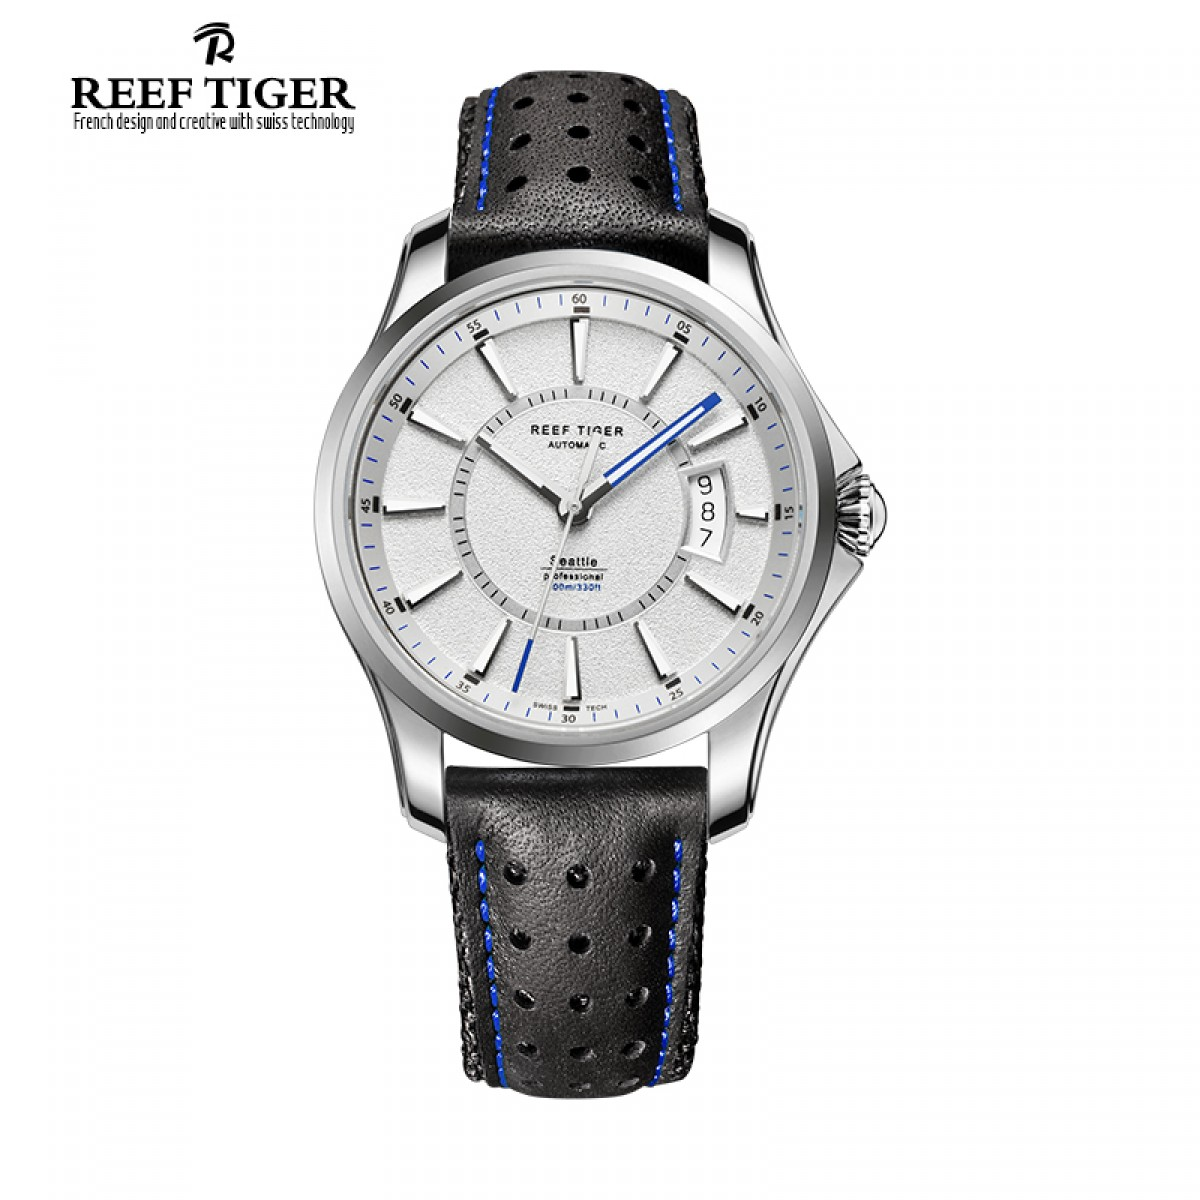 Reef Tiger Seattle Space Needle White Dial Steel Automatic Men's Watch RGA166